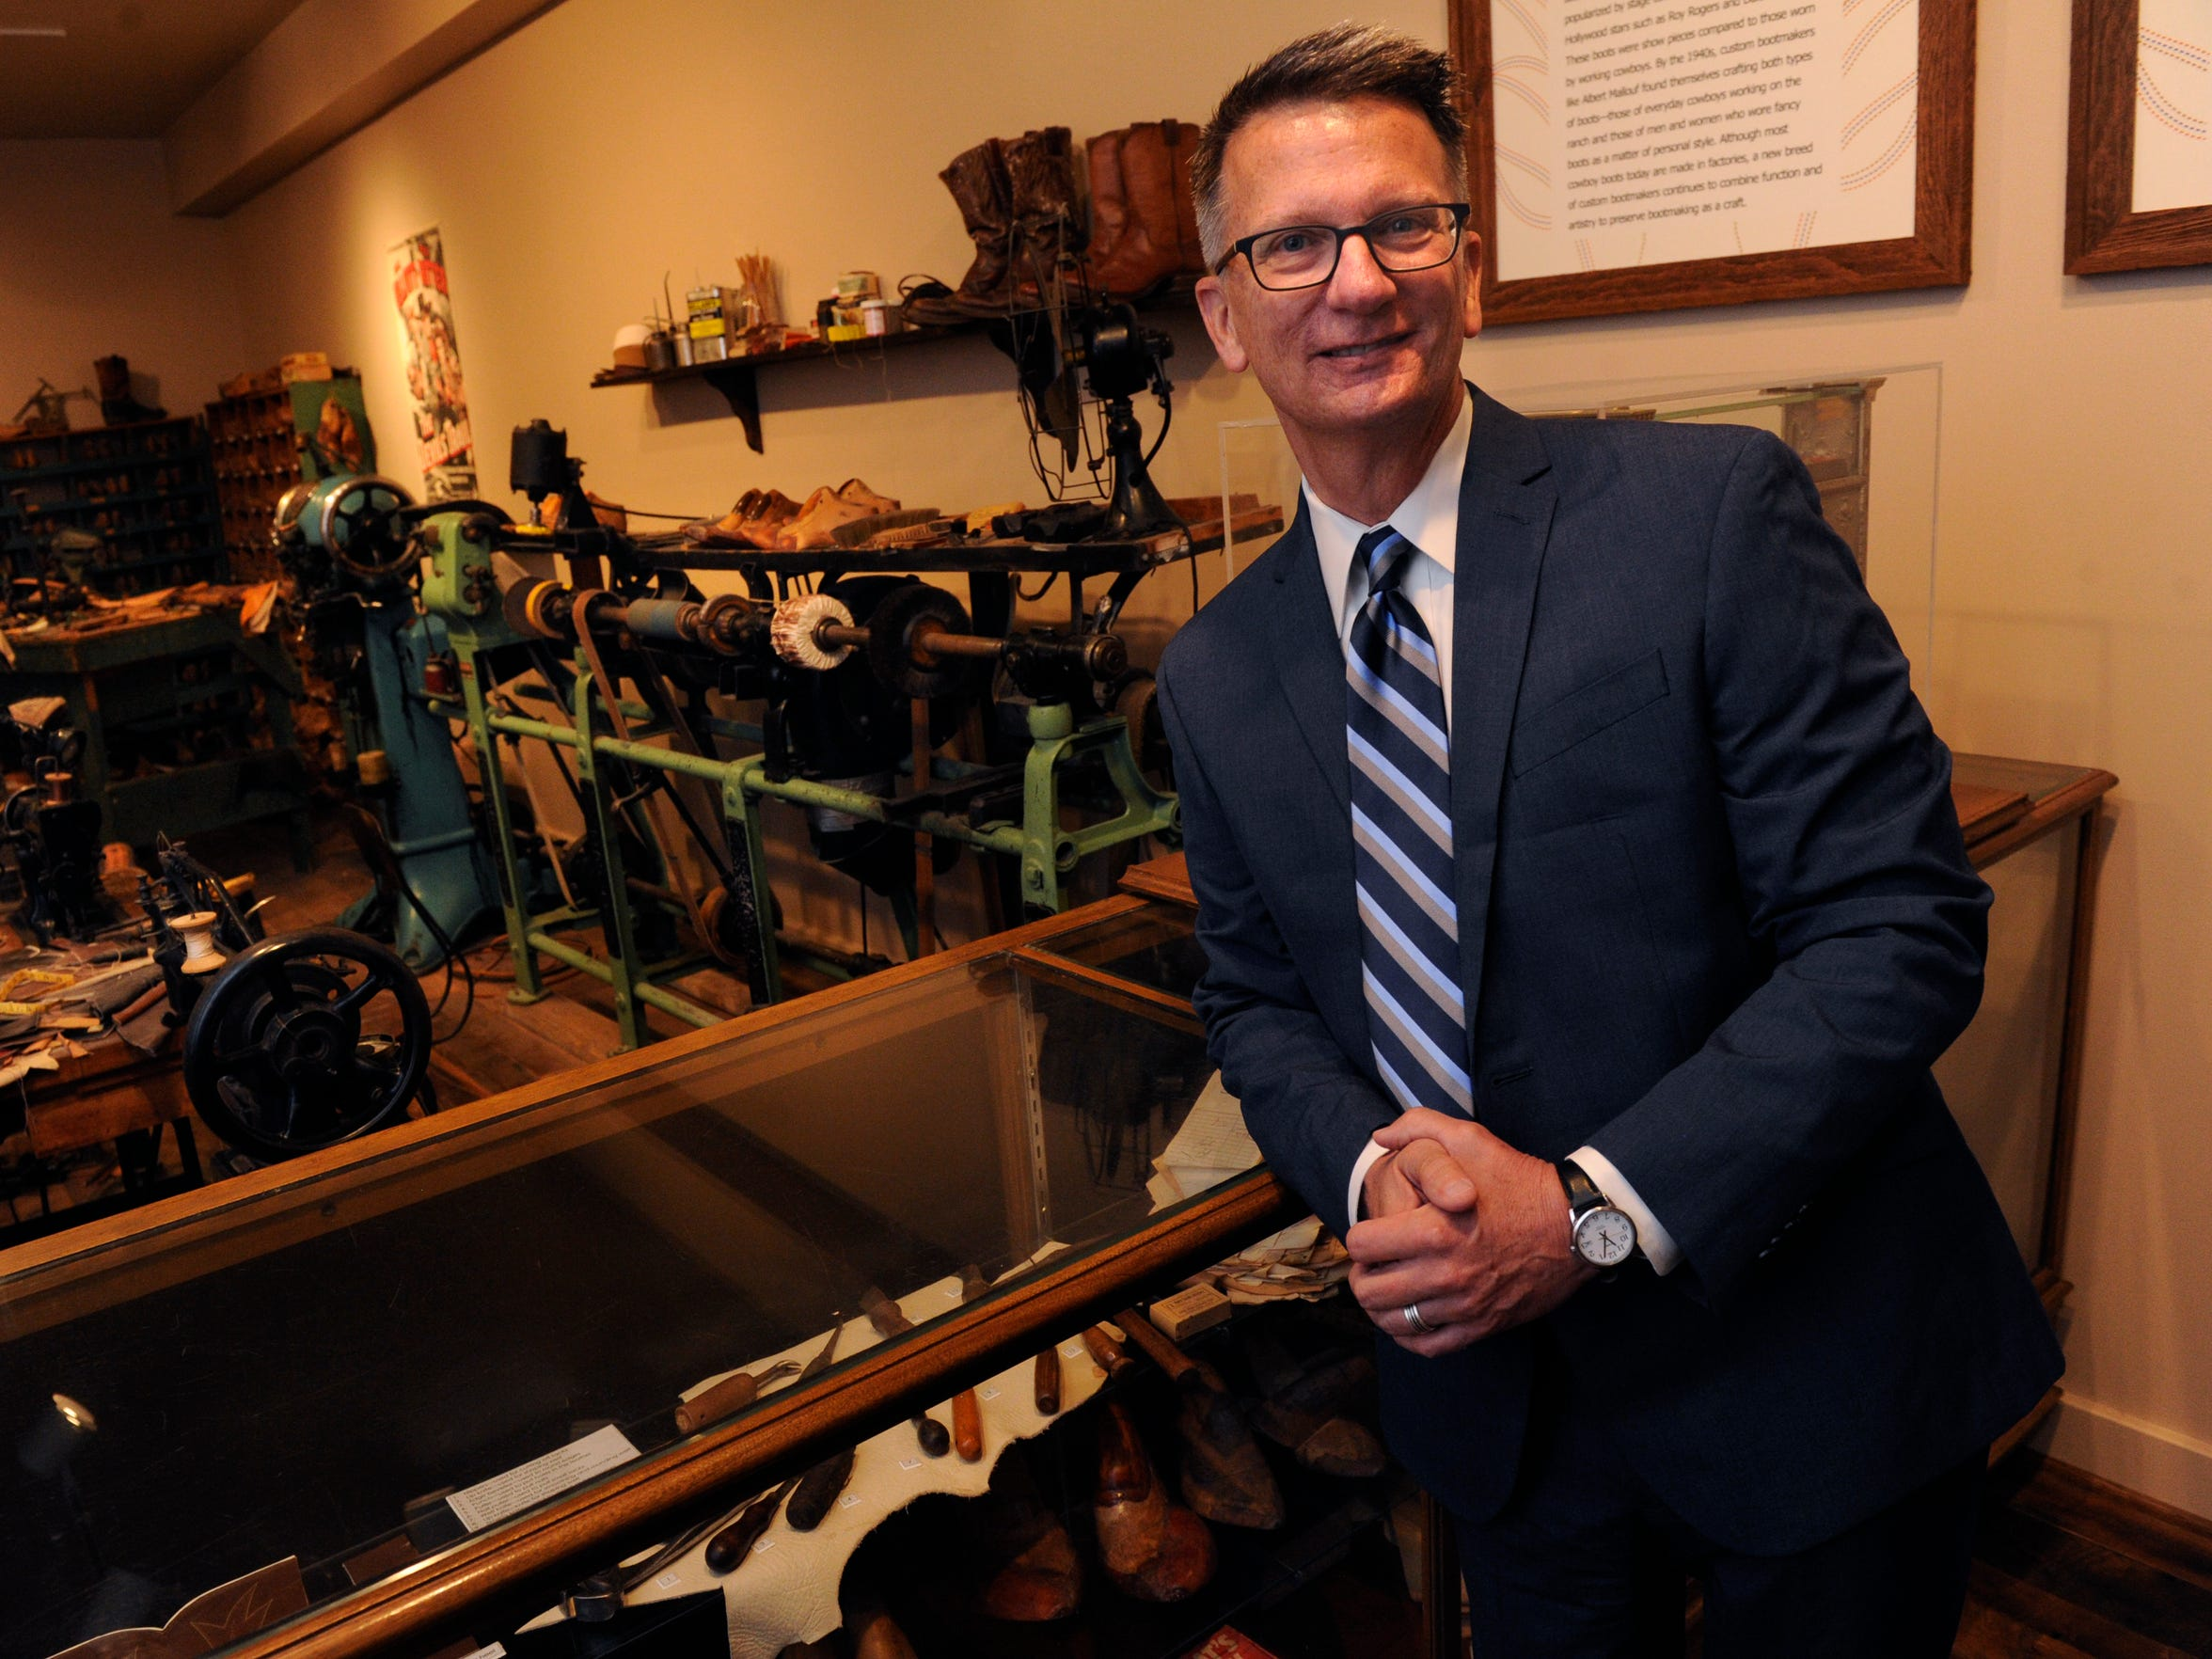 Bob Nutt at the boot shop in The Grace Museum Aug. 1, 2017. Nutt has been involved with the museum and its predecessor since 1984.